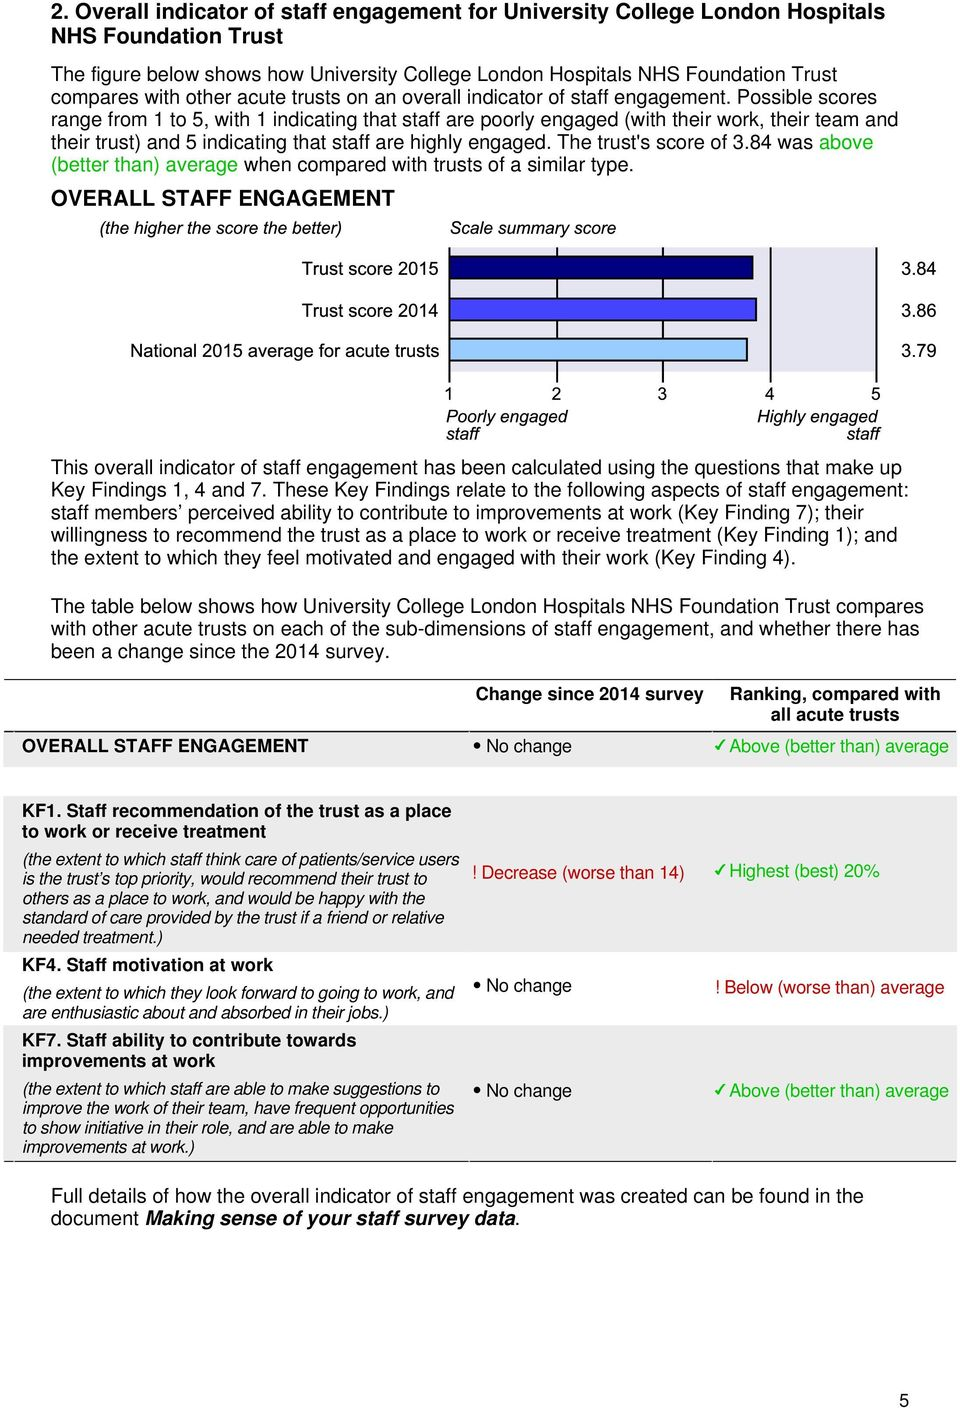 Possible scores range from 1 to 5, with 1 indicating that staff are poorly engaged (with their work, their team and their trust) and 5 indicating that staff are highly engaged. The trust's score of 3.